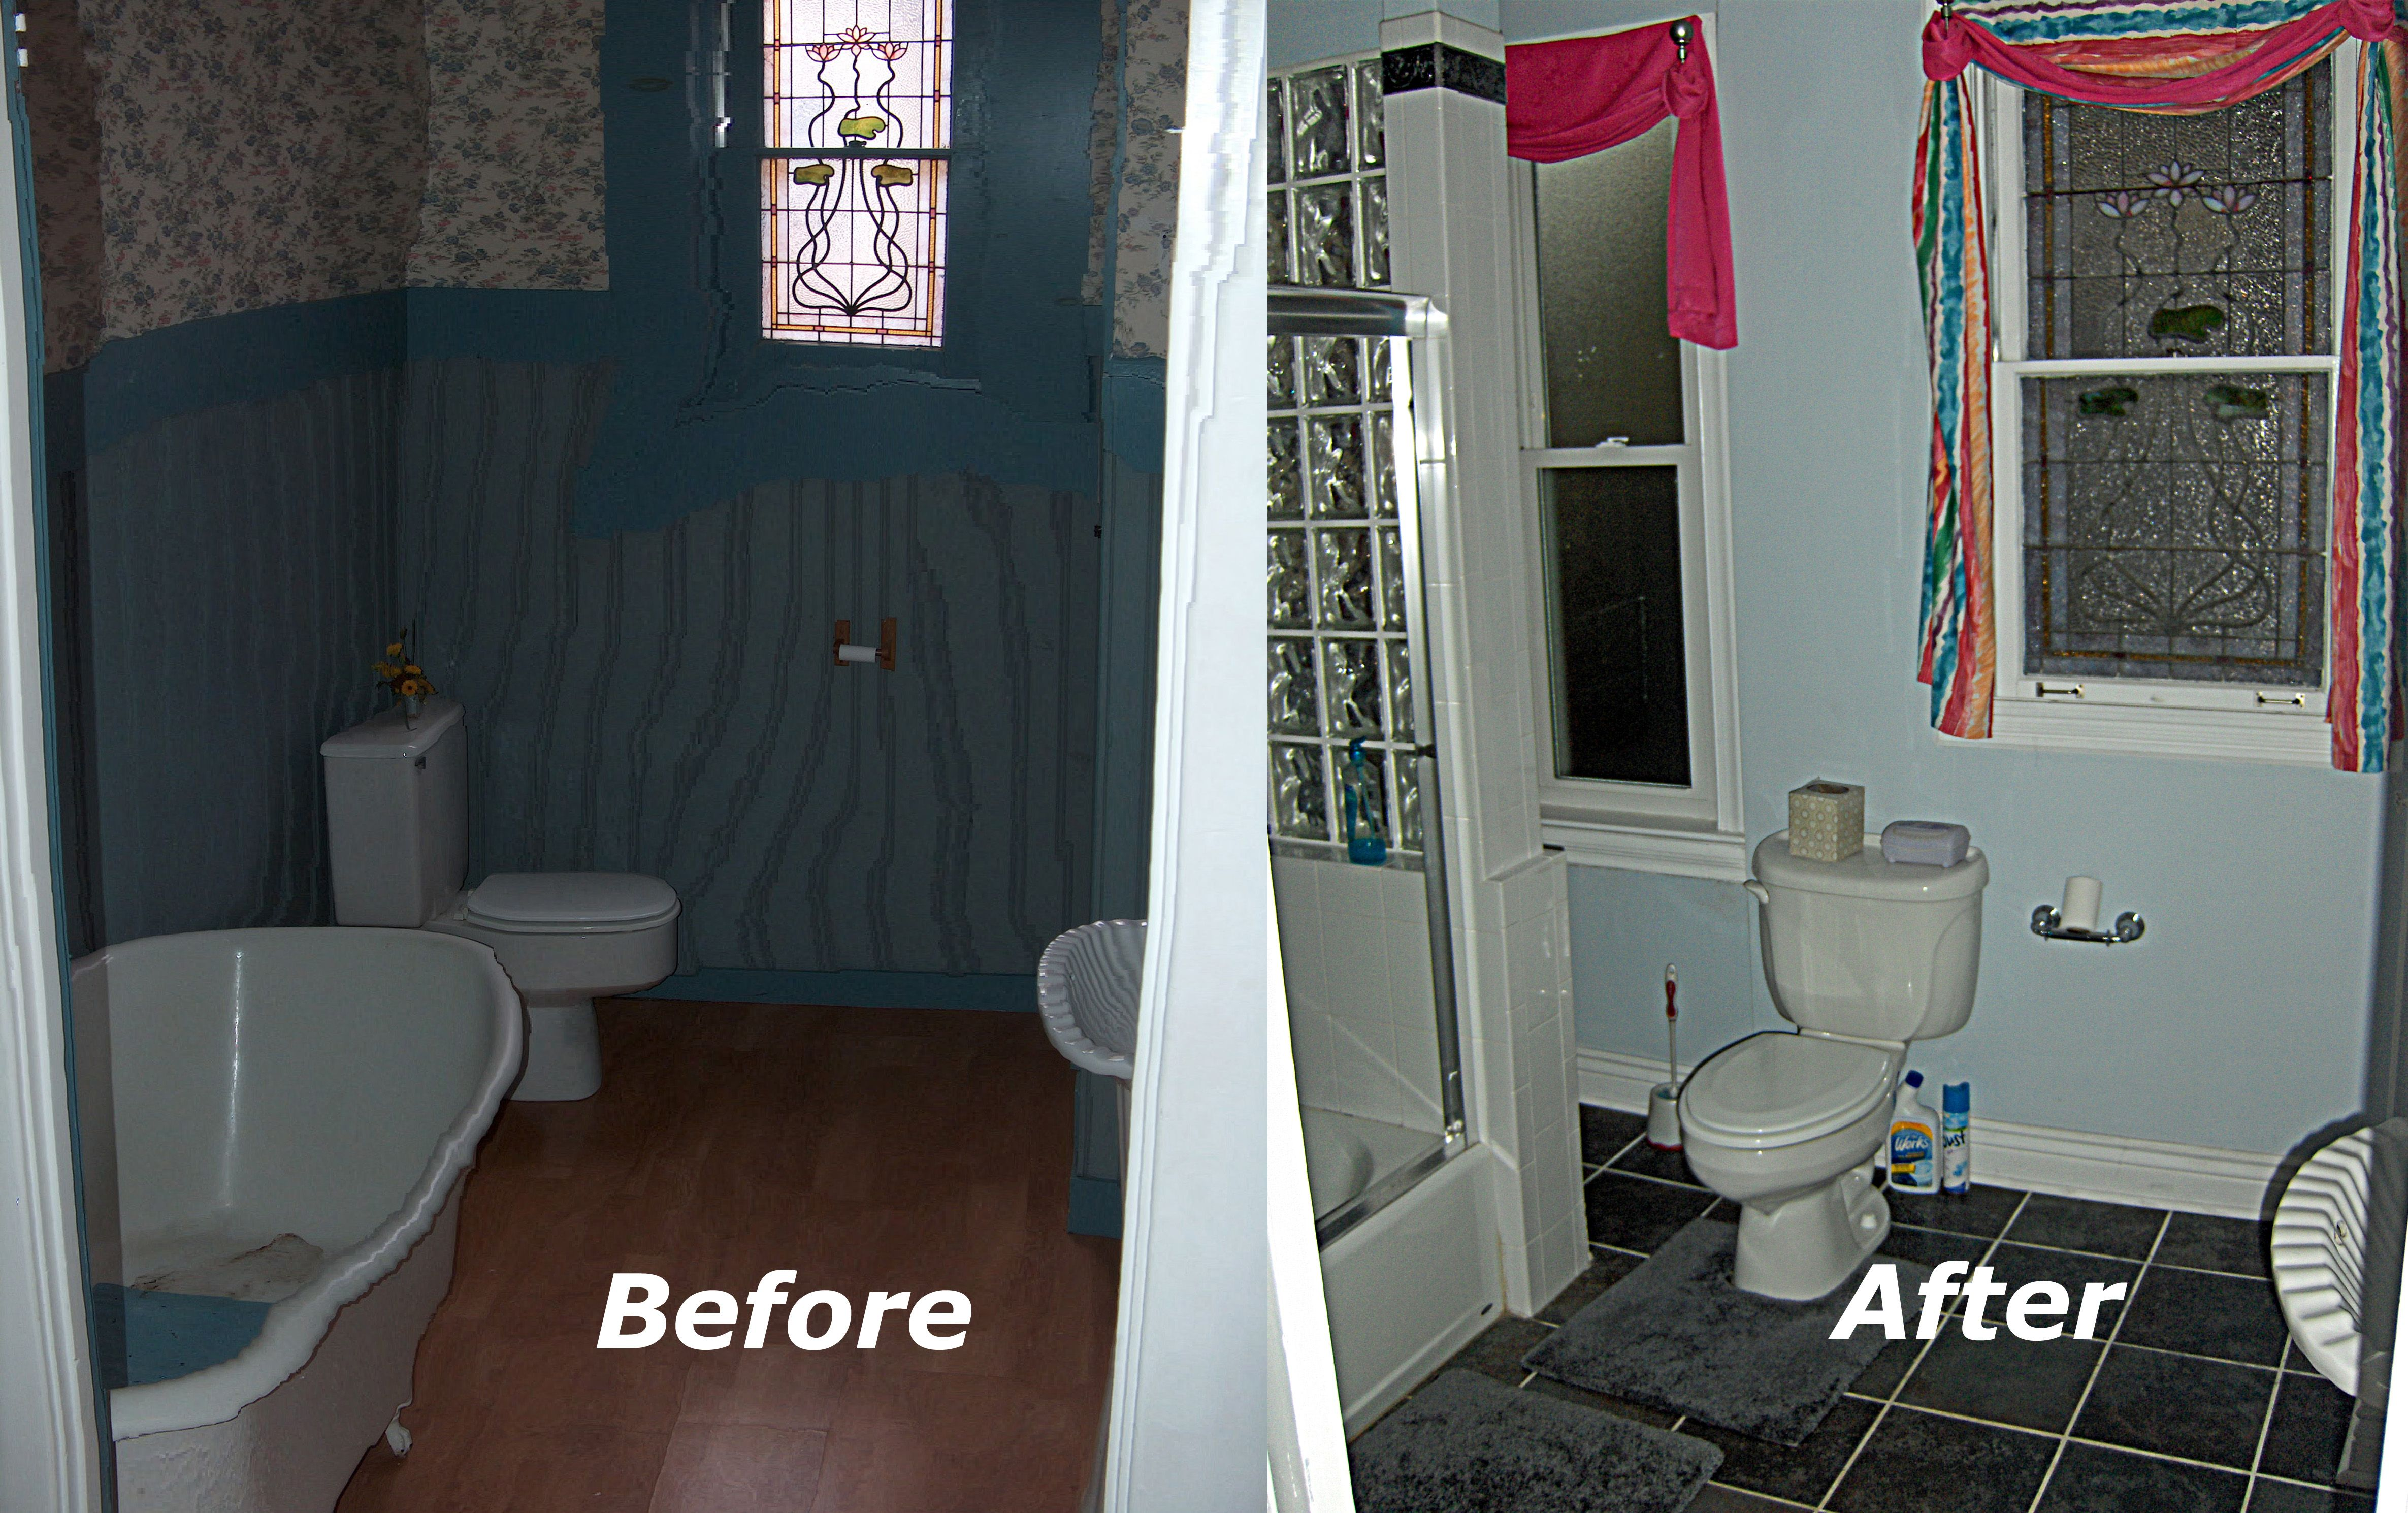 2nd Floor Bathroom Had To Be Enlarged By Moving Partition Wall With Small Bedroom Small Bedroom Is Now A Walk In Clos Bathrooms Remodel Remodel Small Bedroom